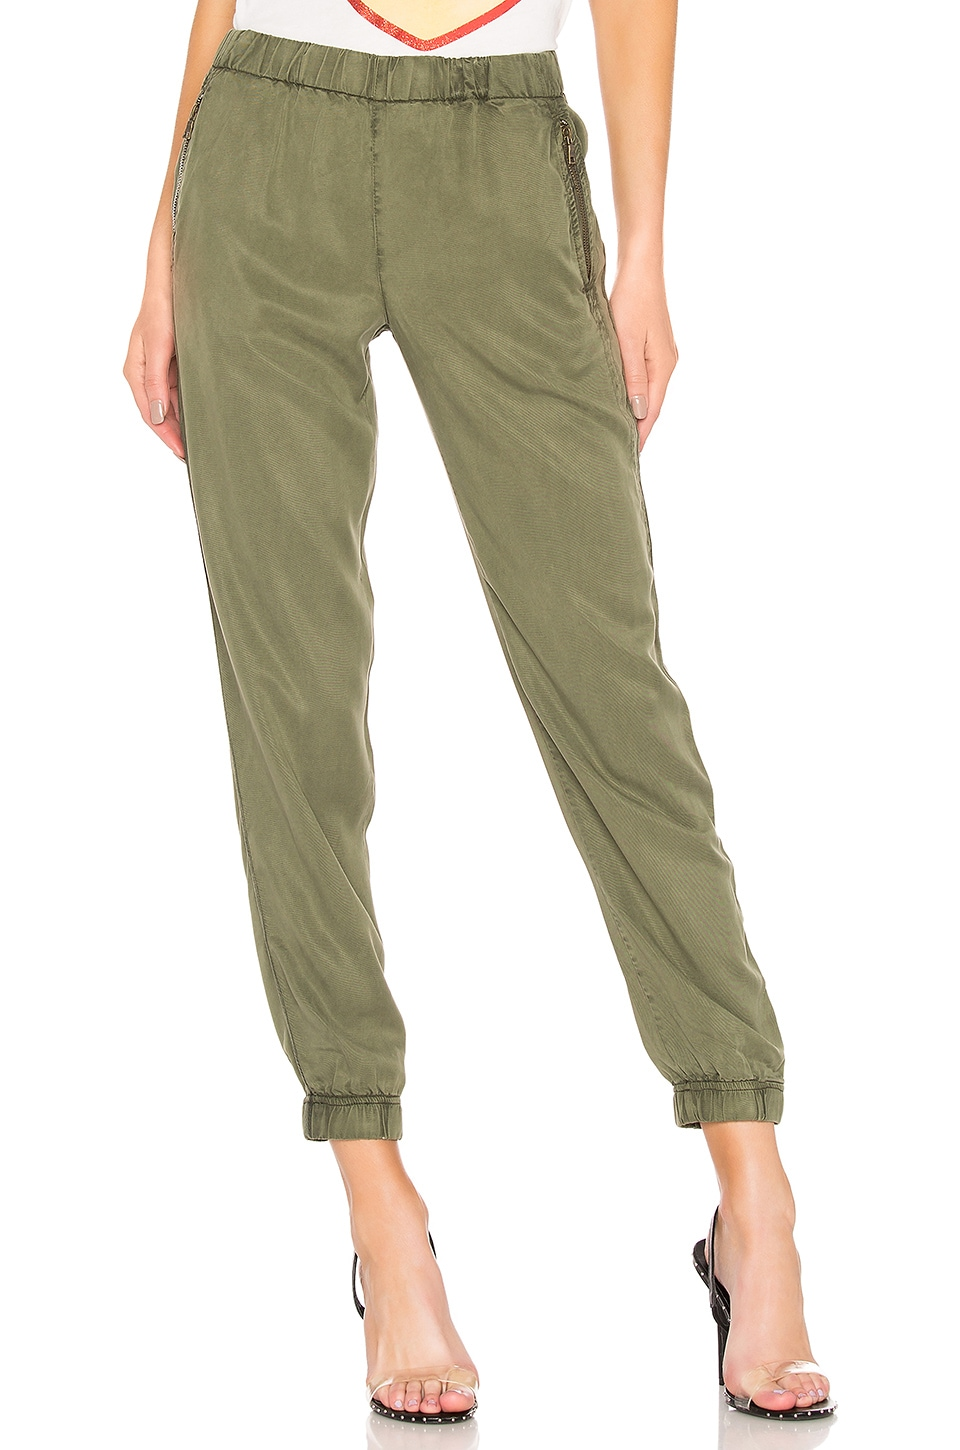 YFB CLOTHING Martino Pant in Palm